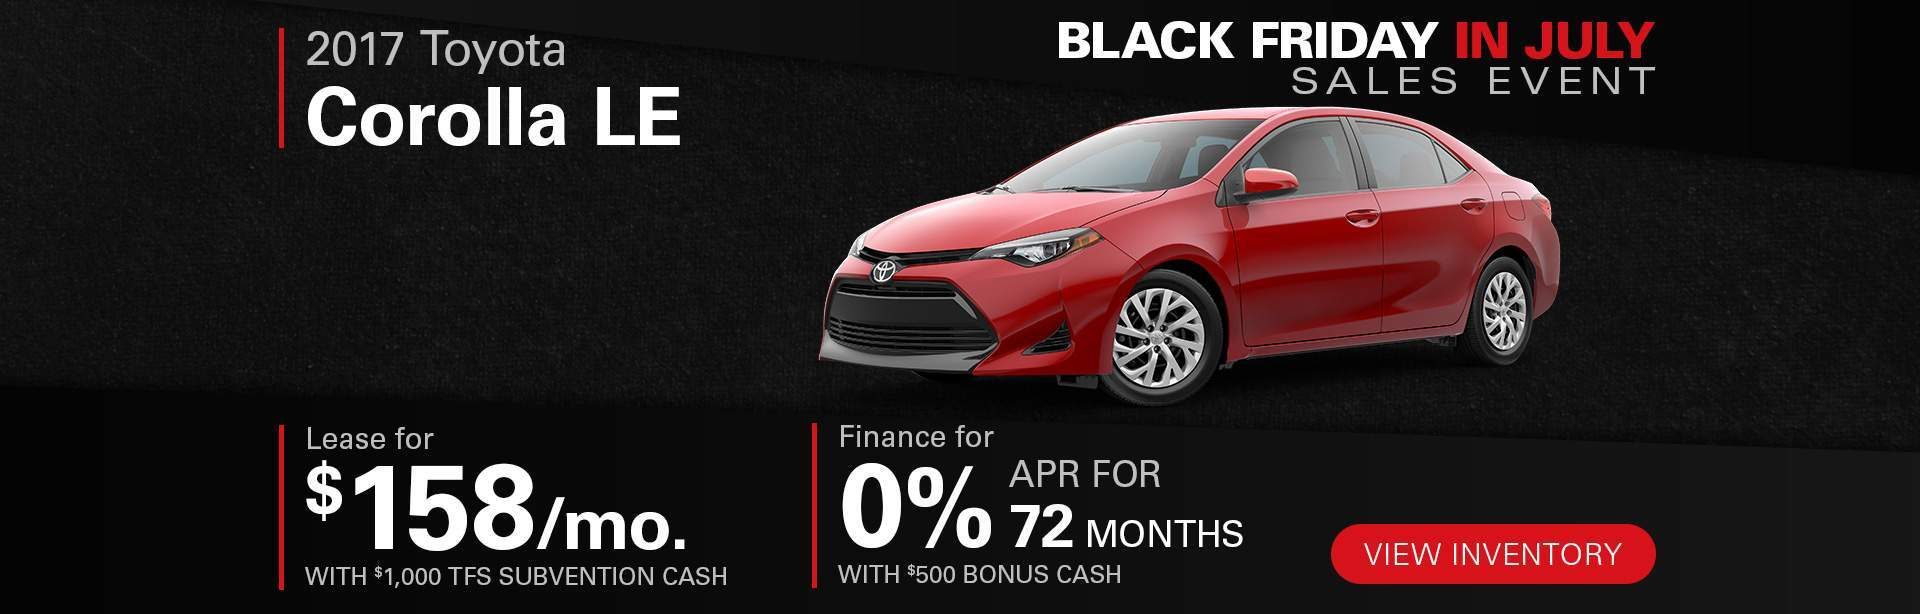 Black Friday In July Corolla LE